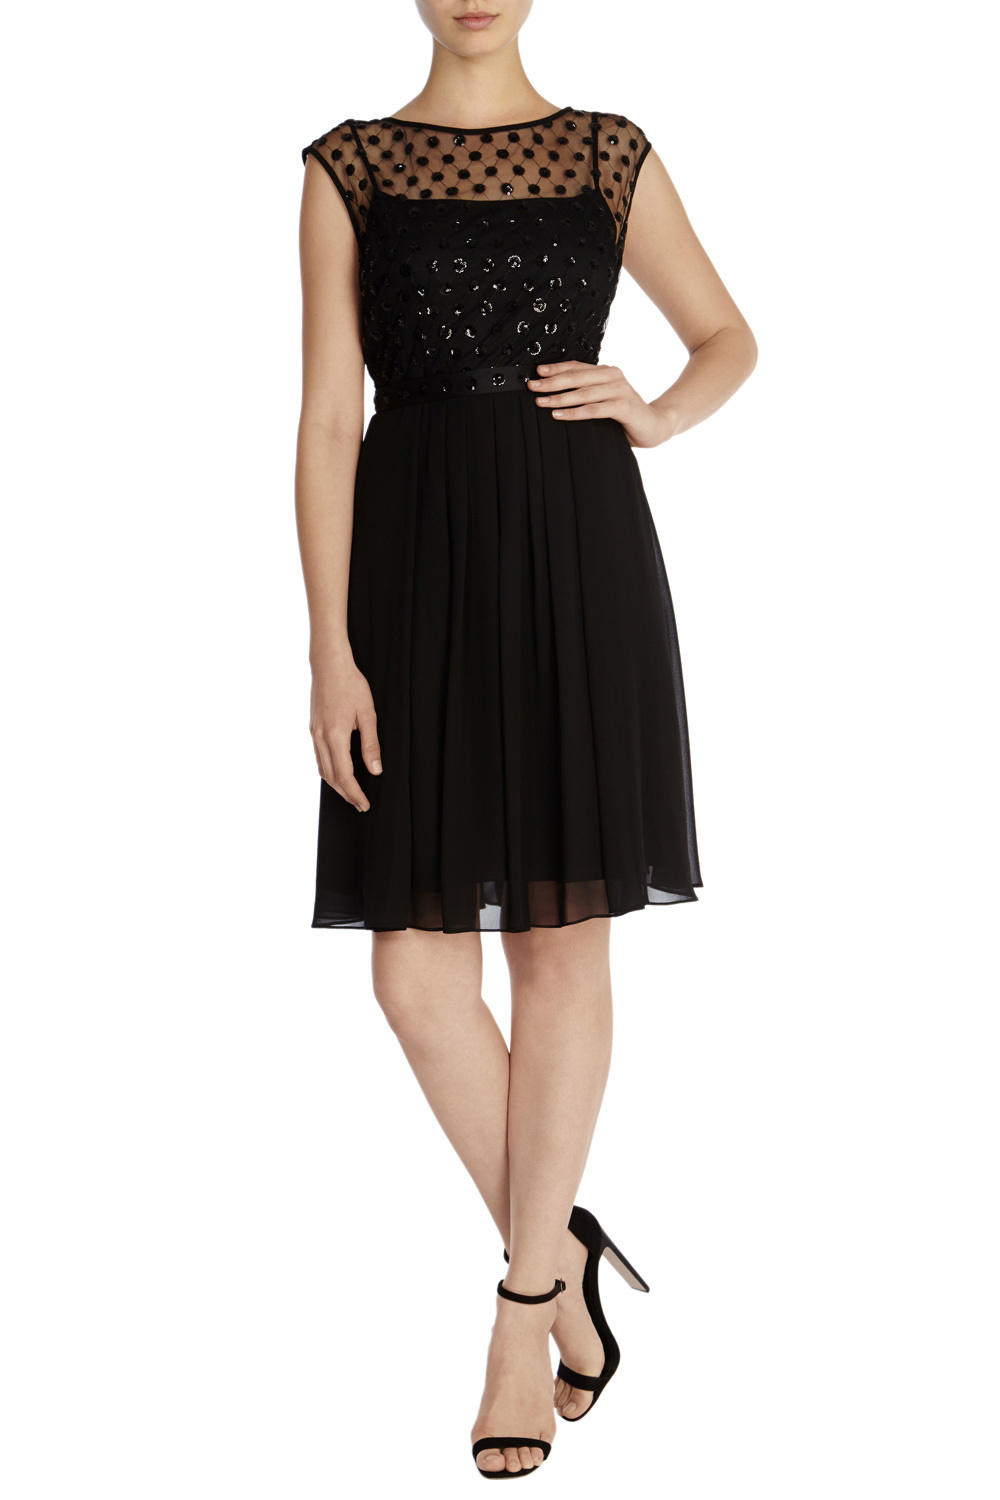 Lori Lee Cluster Short Dress - neckline: slash/boat neckline; sleeve style: capped; pattern: plain; bust detail: sheer at bust; predominant colour: black; occasions: evening; length: just above the knee; fit: fitted at waist & bust; style: fit & flare; fibres: polyester/polyamide - 100%; sleeve length: short sleeve; texture group: crepes; pattern type: fabric; embellishment: beading; season: a/w 2015